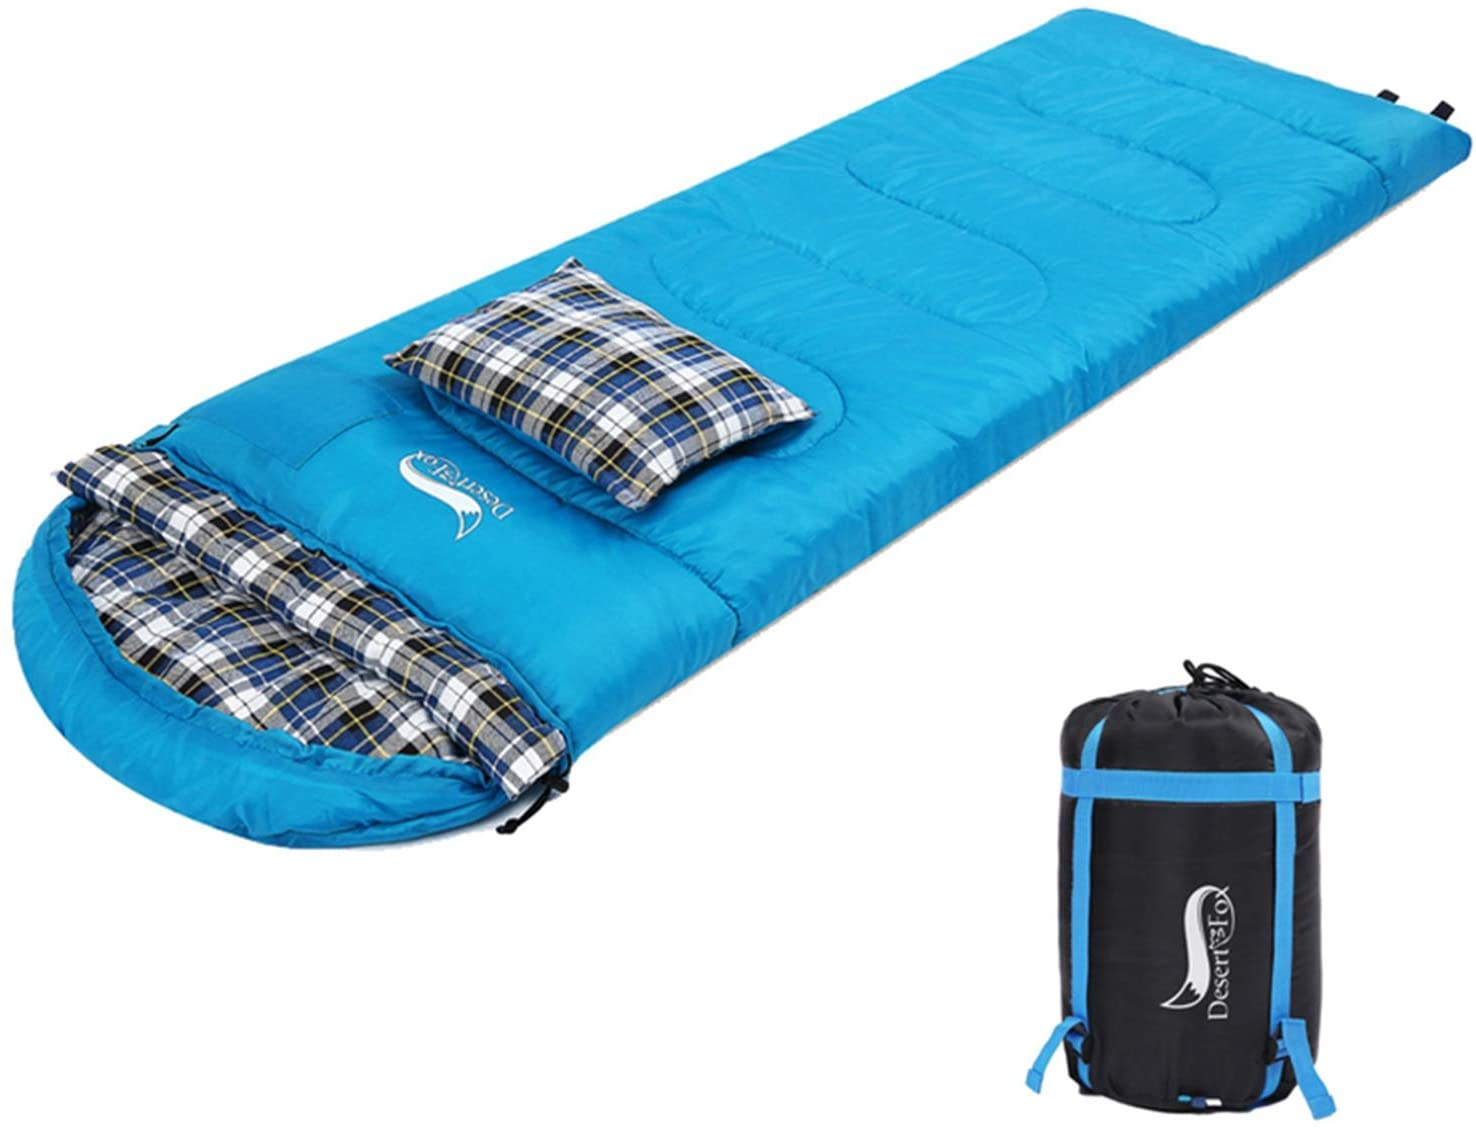 DESERT & FOX Cotton Flannel Sleeping Bags with Pillow, 4 Season Warm & Cold Weather Envelope Compression Sack, Lightweight & Portable Backpacking Sleeping Bag for Outdoor Camping, Hiking, Traveling